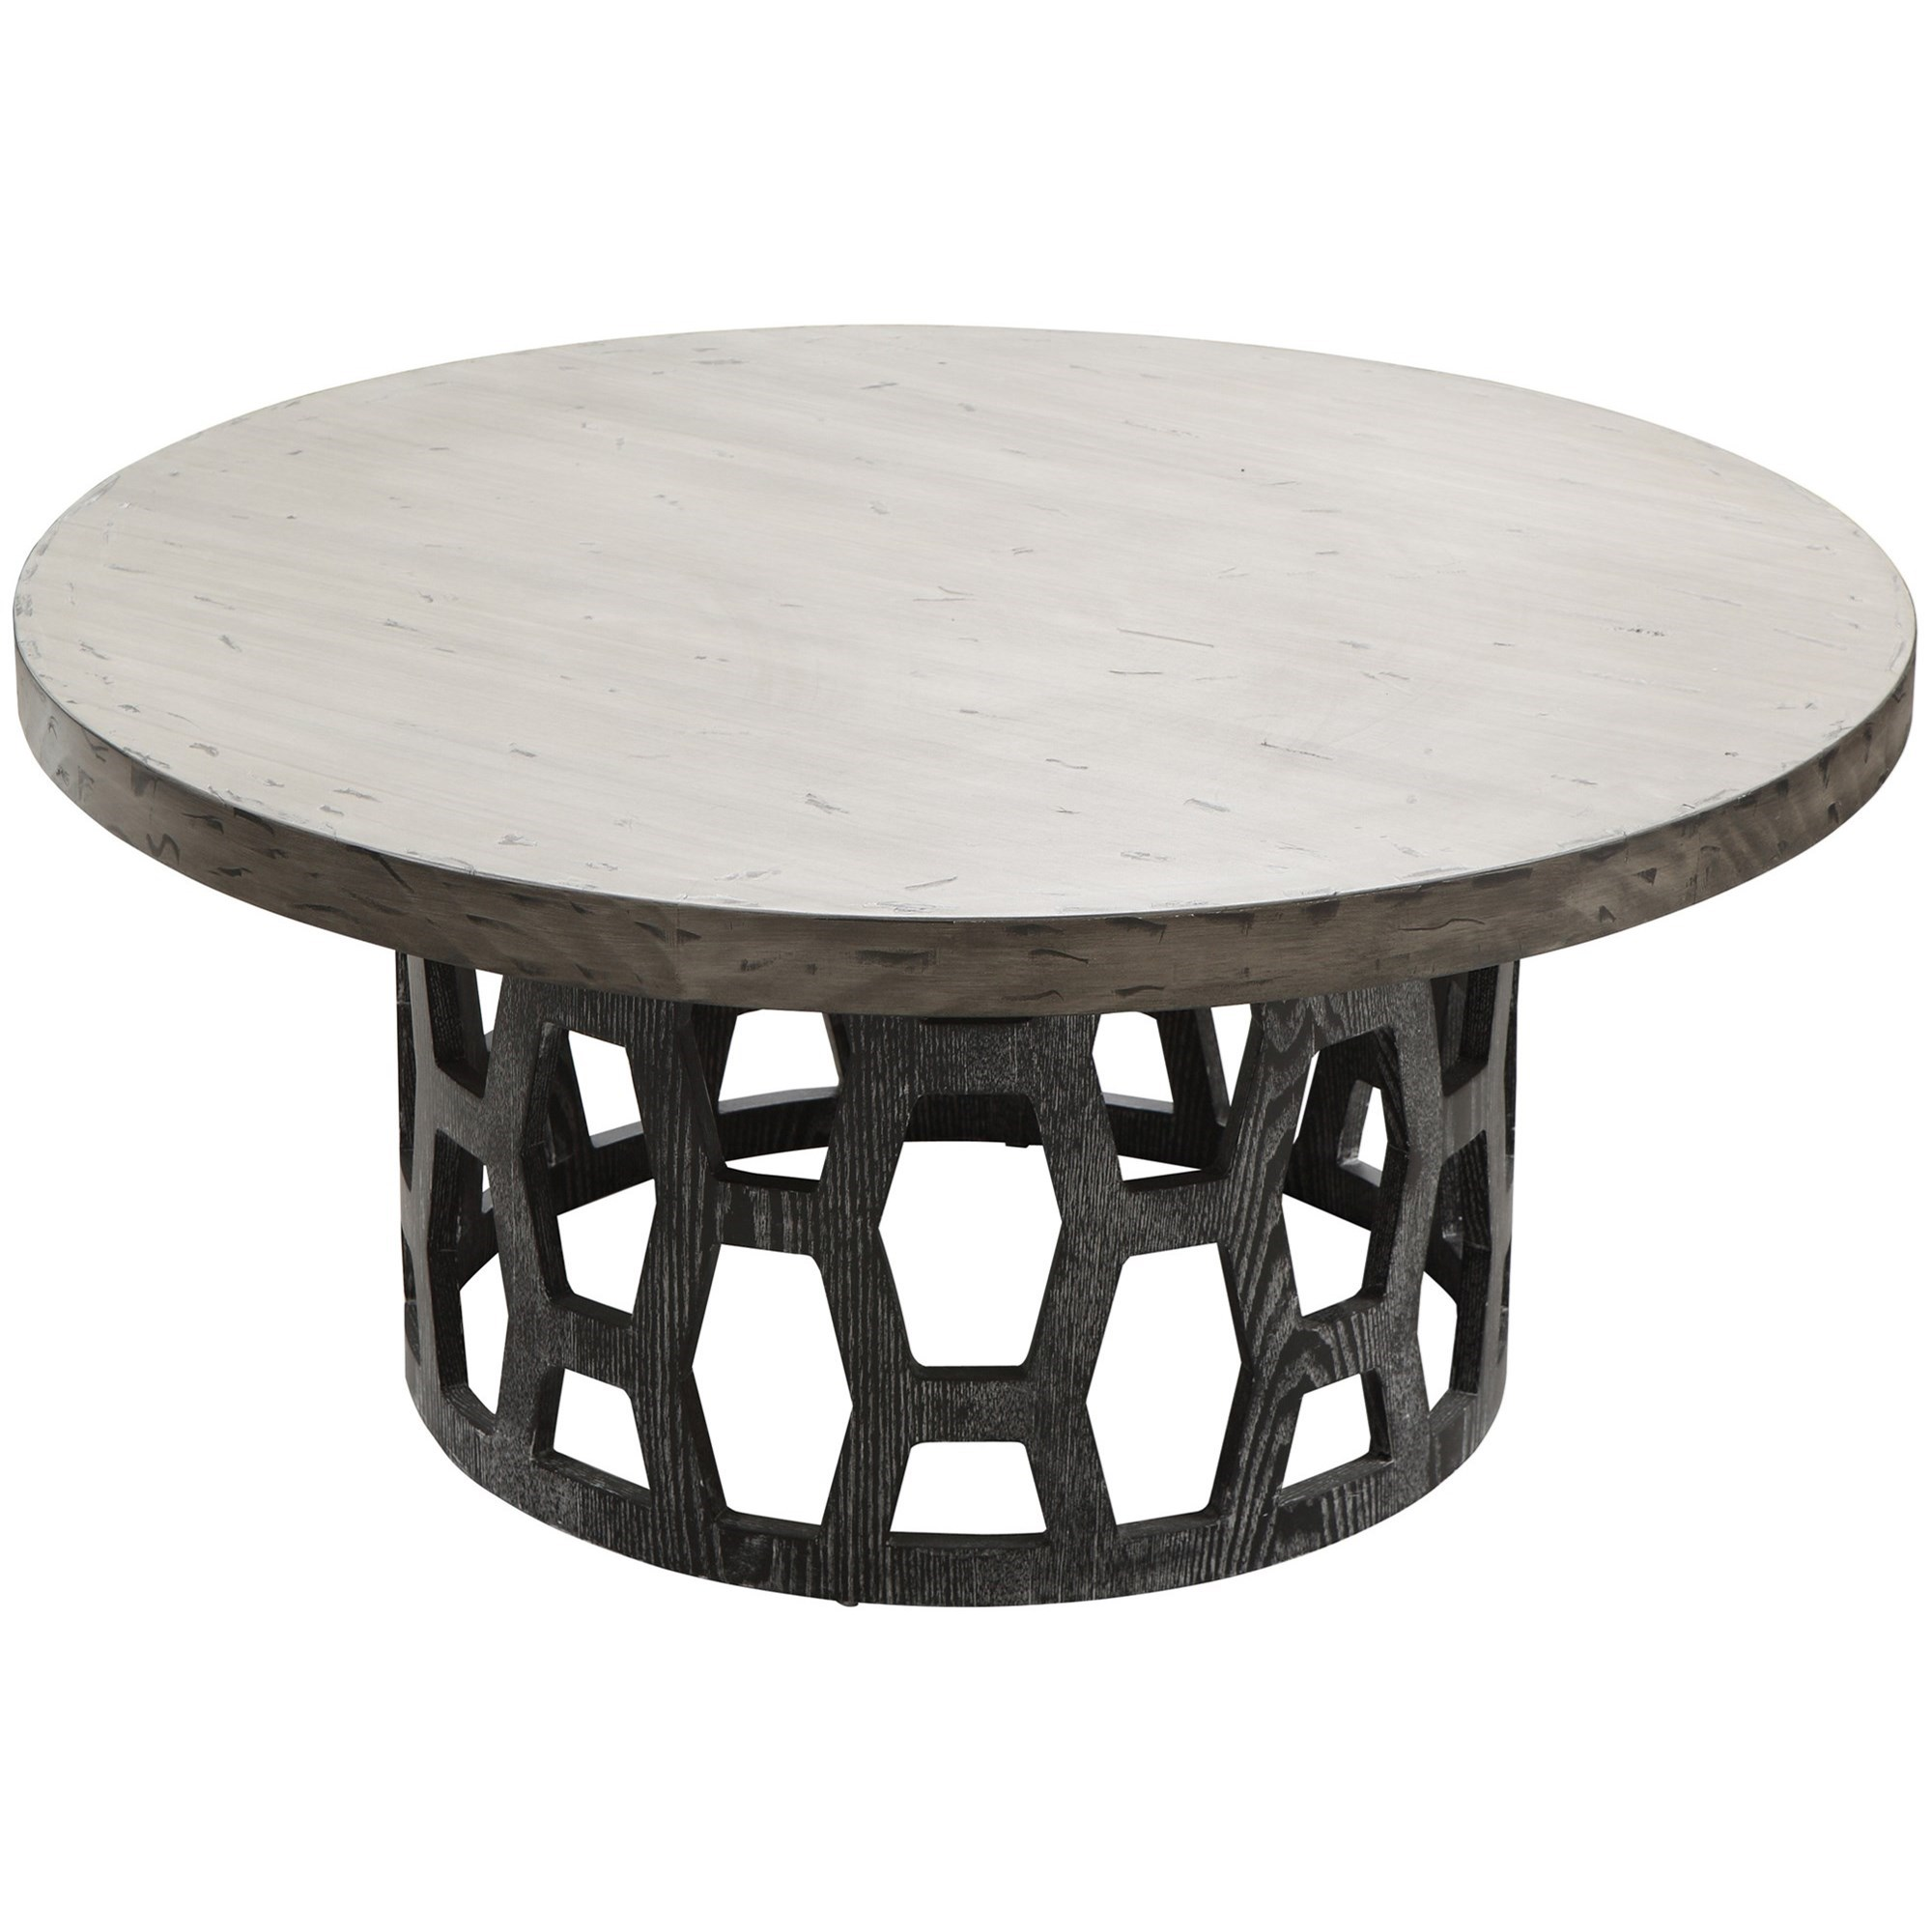 Centennial Coffee Table at Sadler's Home Furnishings